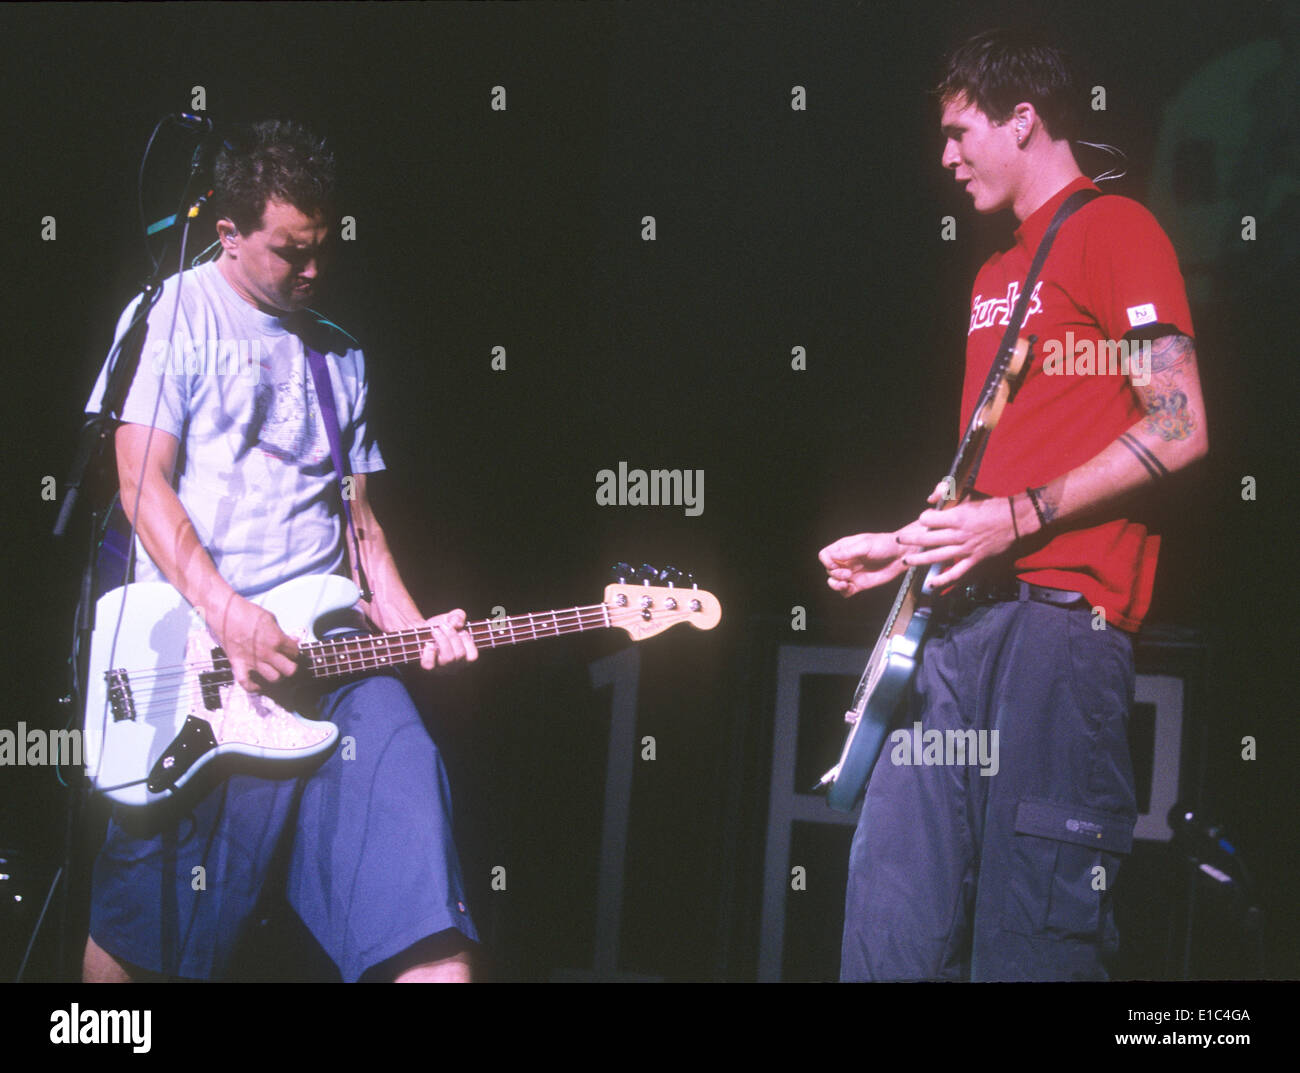 Blink 182 Us Rock Group In 2000 With Mark Hoppus At Left And Tom